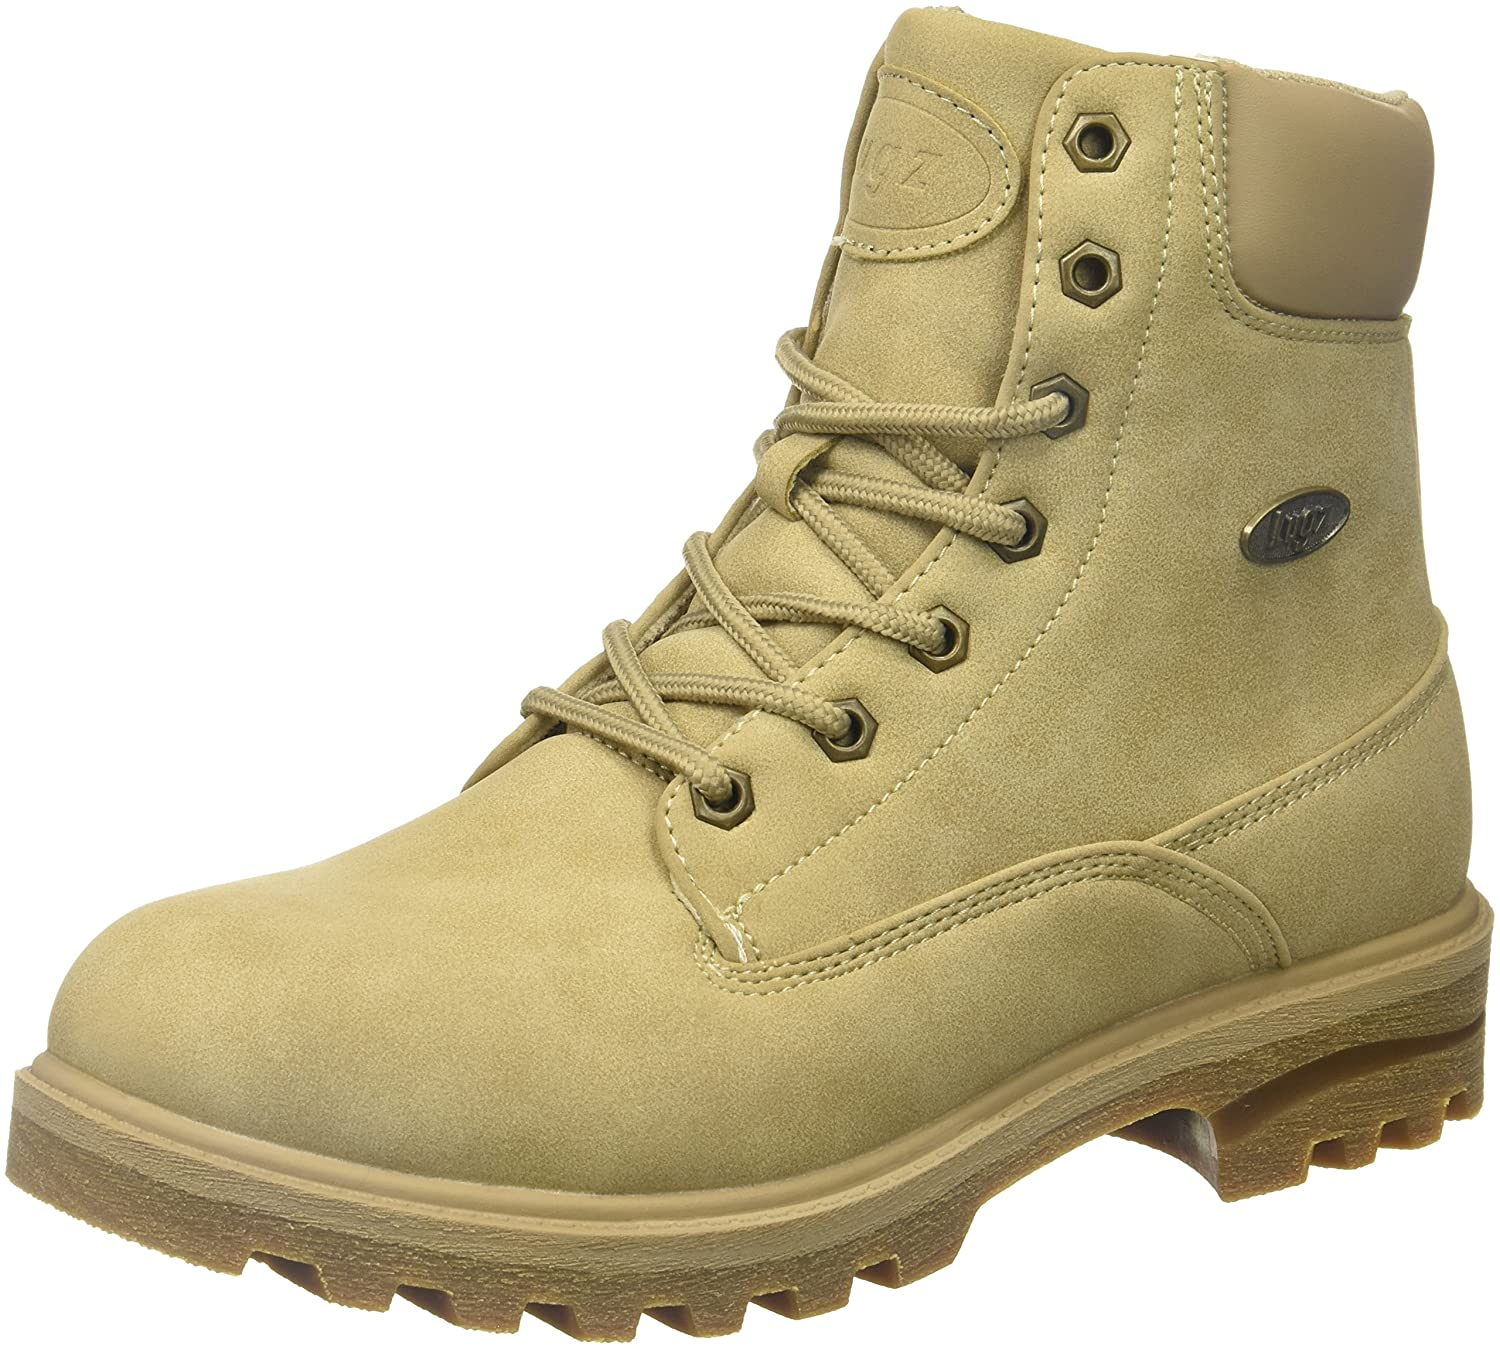 Lugz Women's Empire Hi Fashion Boot B073JT86D1 9.5 B(M) US|Sand/Gum